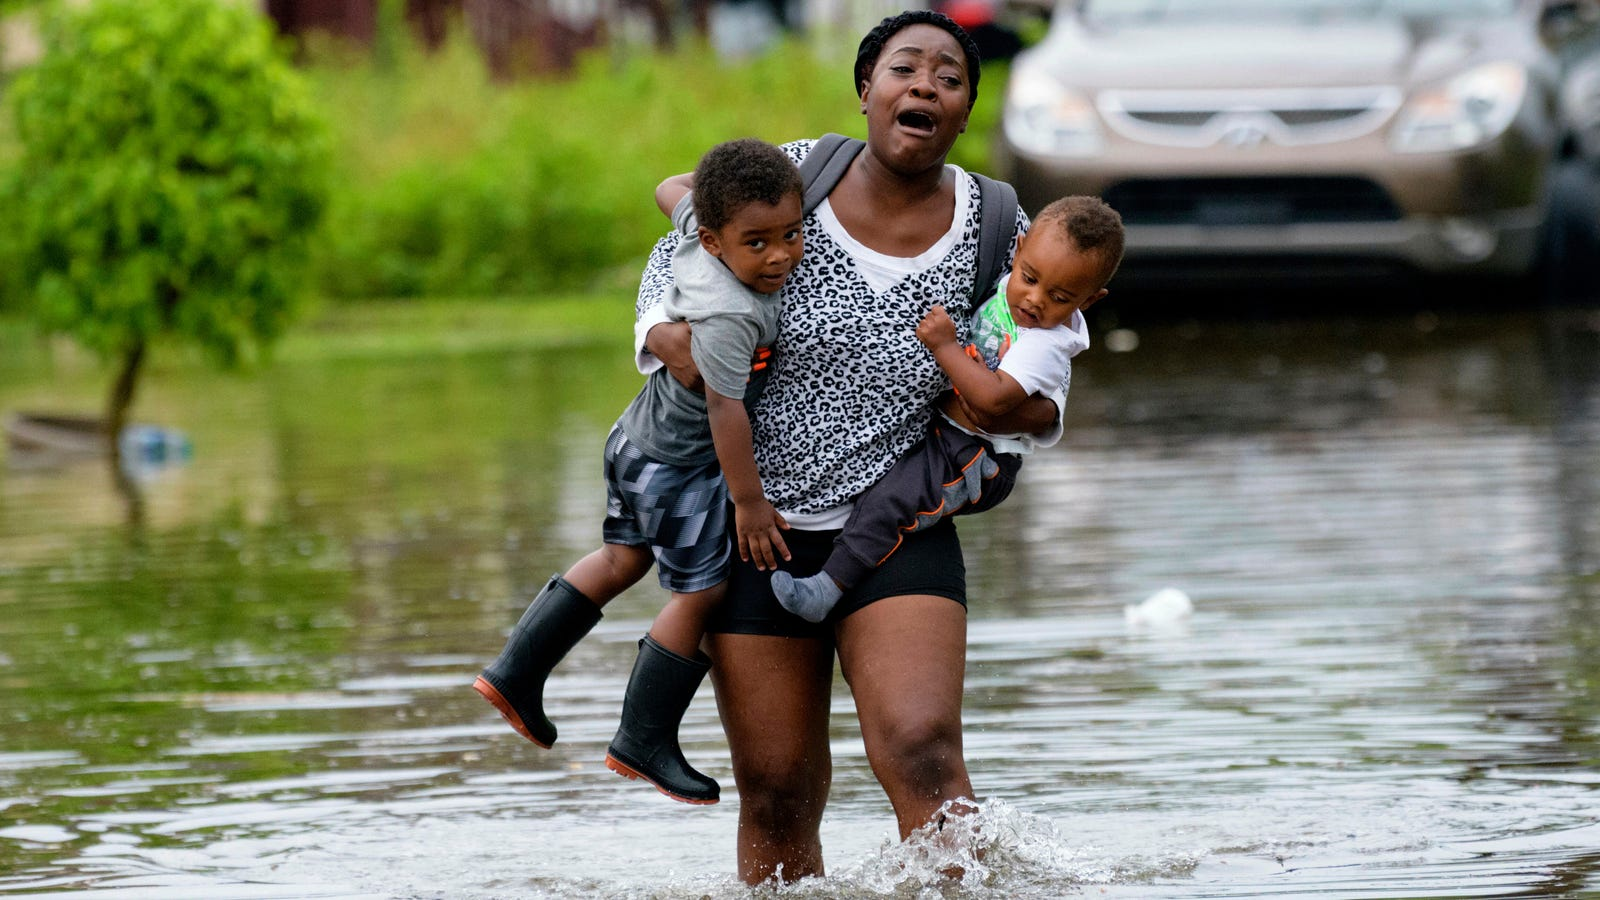 New Orleans Faces a Major Flood Threat [Updating]